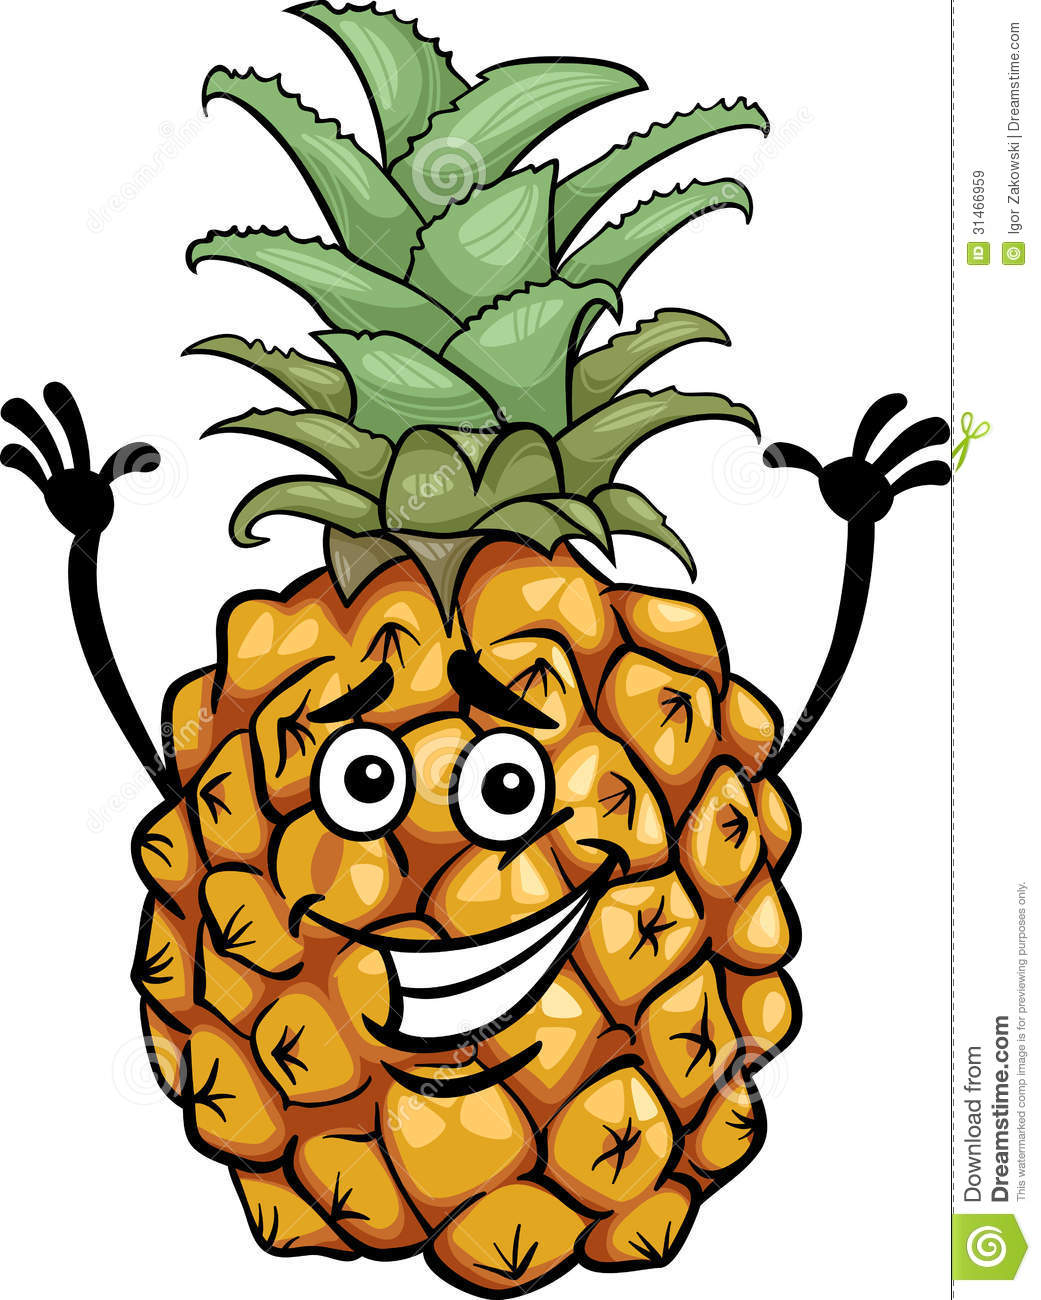 Funny Pineapple Fruit Cartoon Illustration Royalty Free Stock Images ...